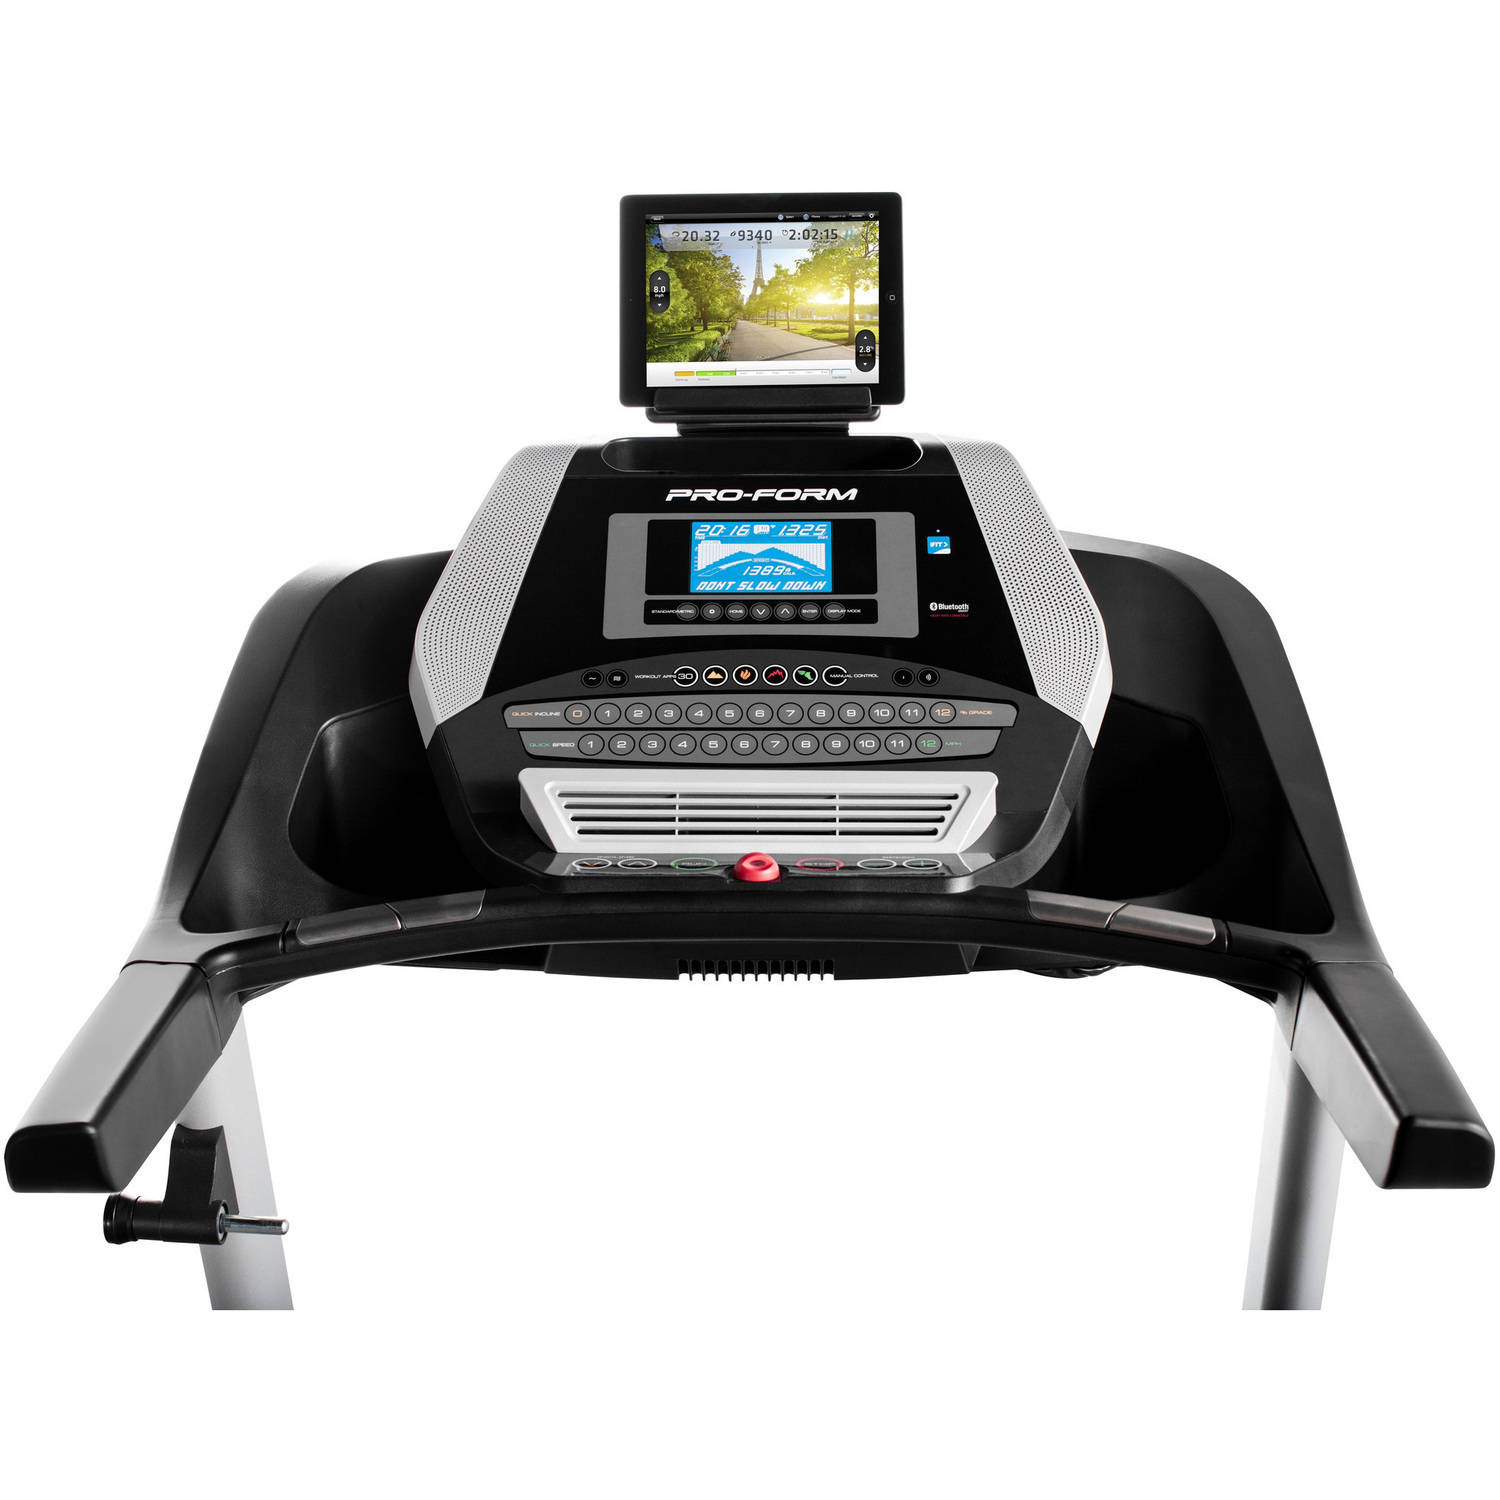 "ProForm 905 CST Treadmill with 5"" Display, Incline and Workout Programs -  Walmart.com"